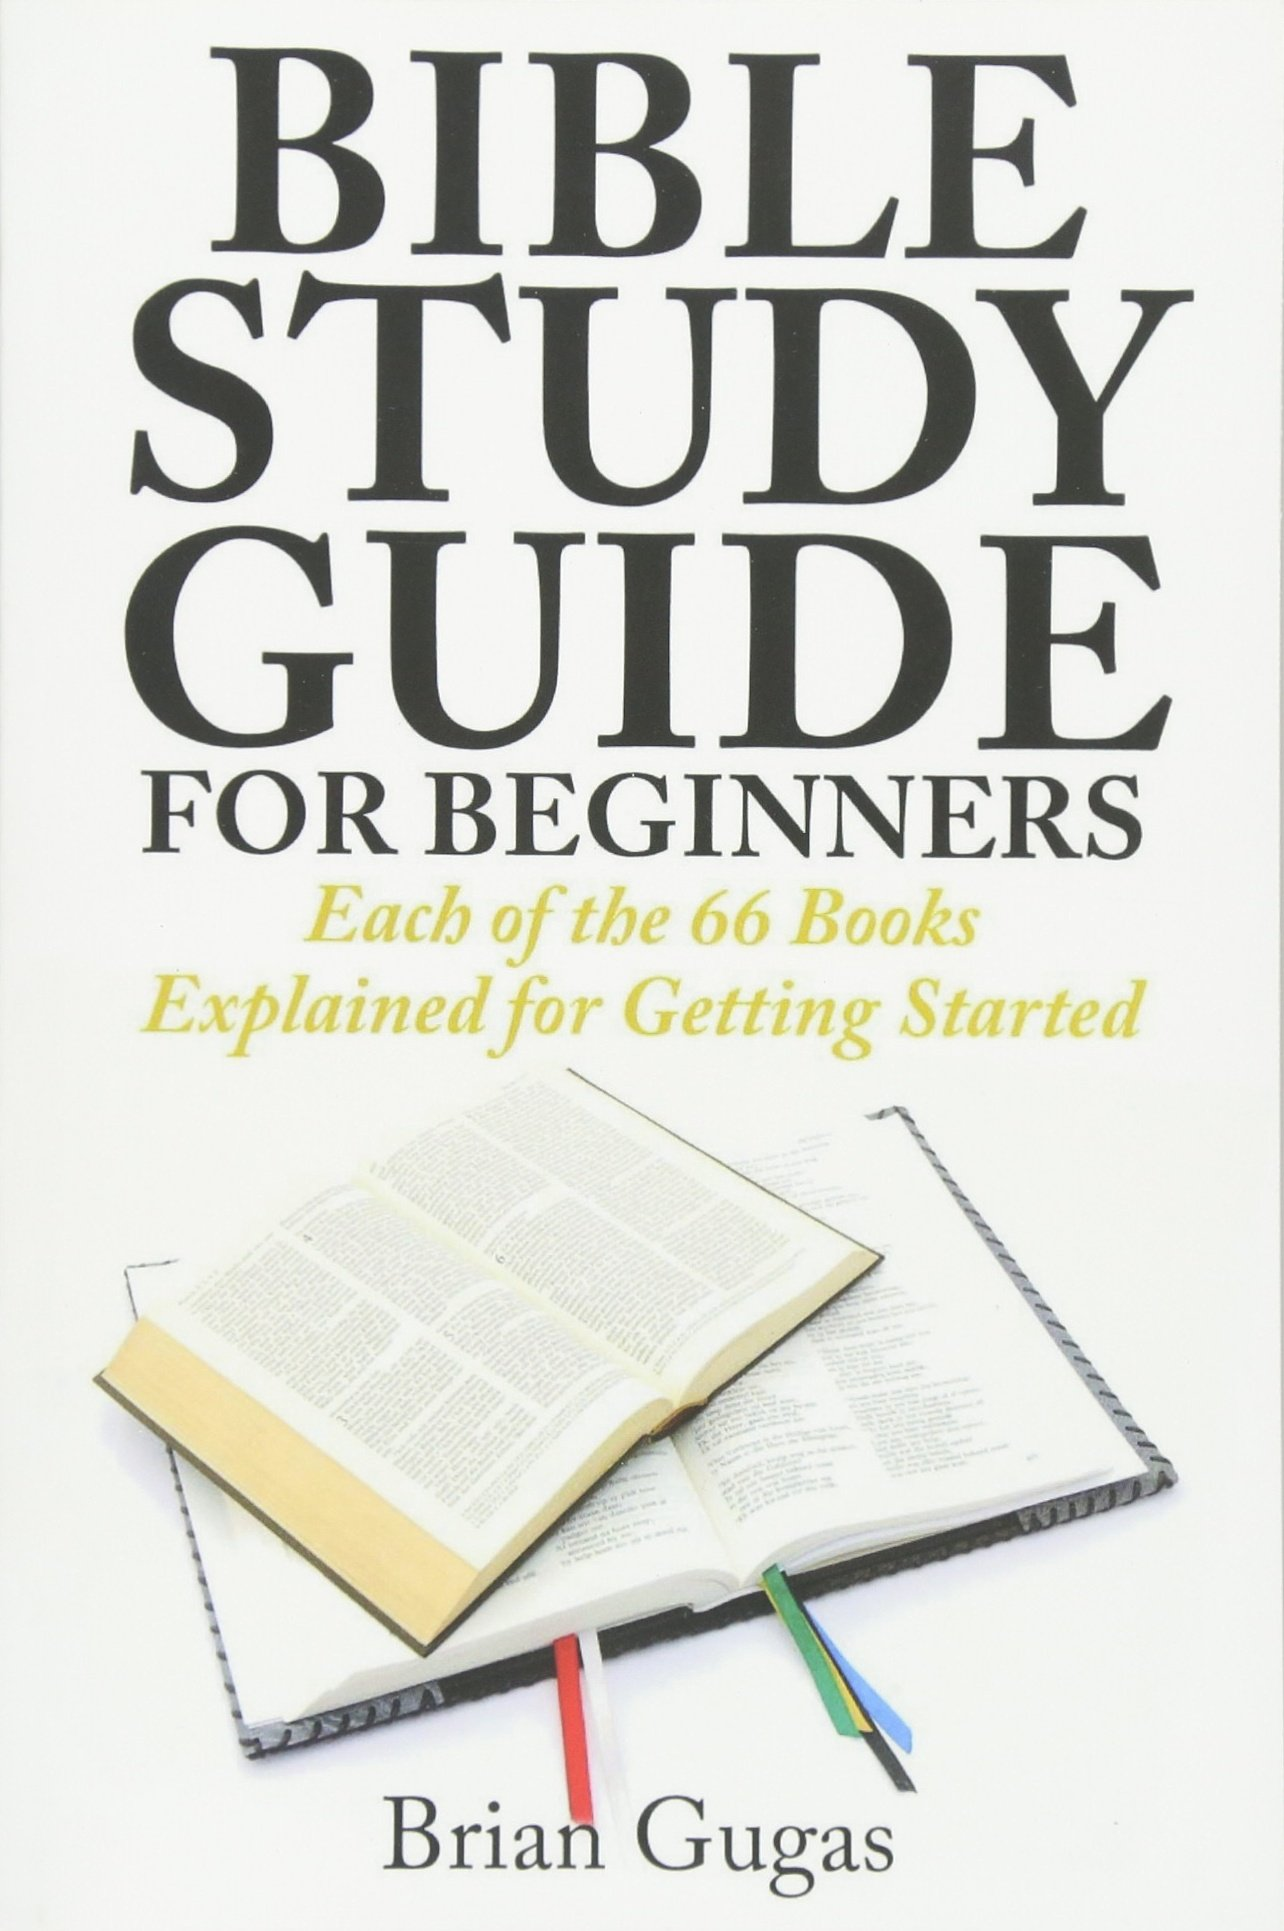 Bible Study Guide Beginners Explained product image